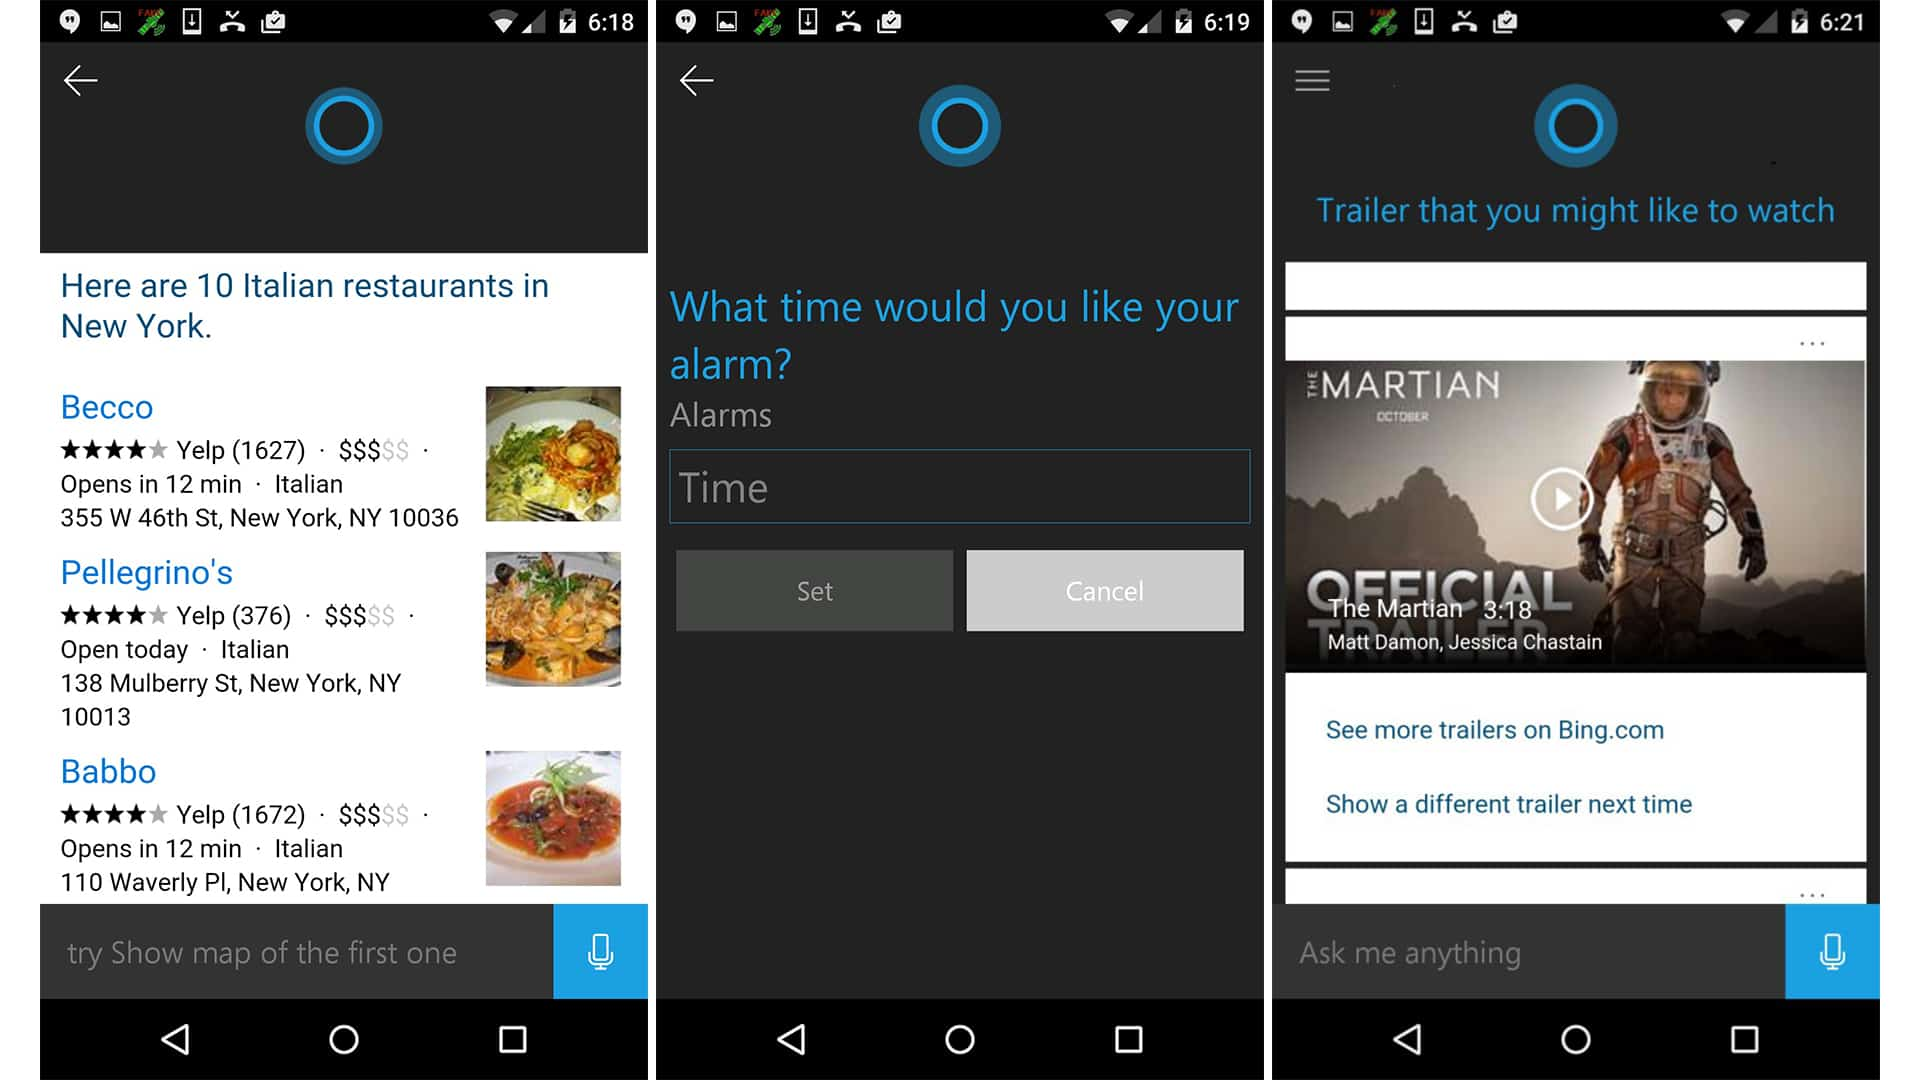 Micosoft Cortana Assistant on Android